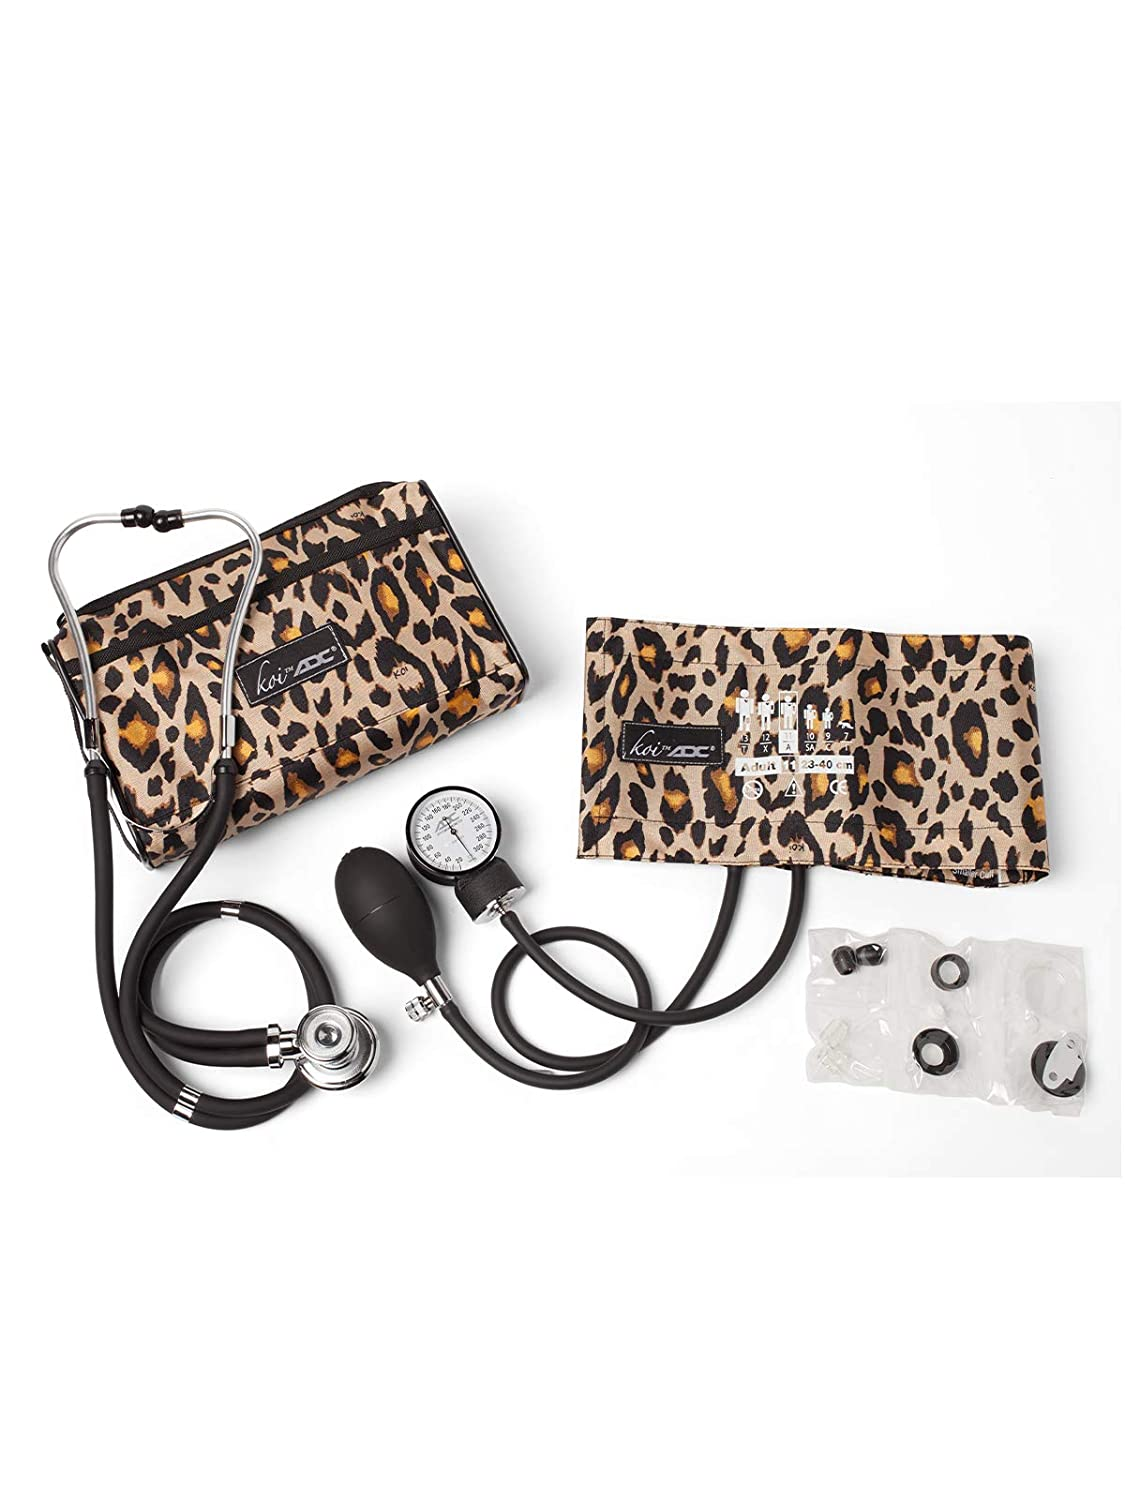 Koi by ADC Blood Pressure and Sprague Stethoscope Combo Kit New Leopard Print